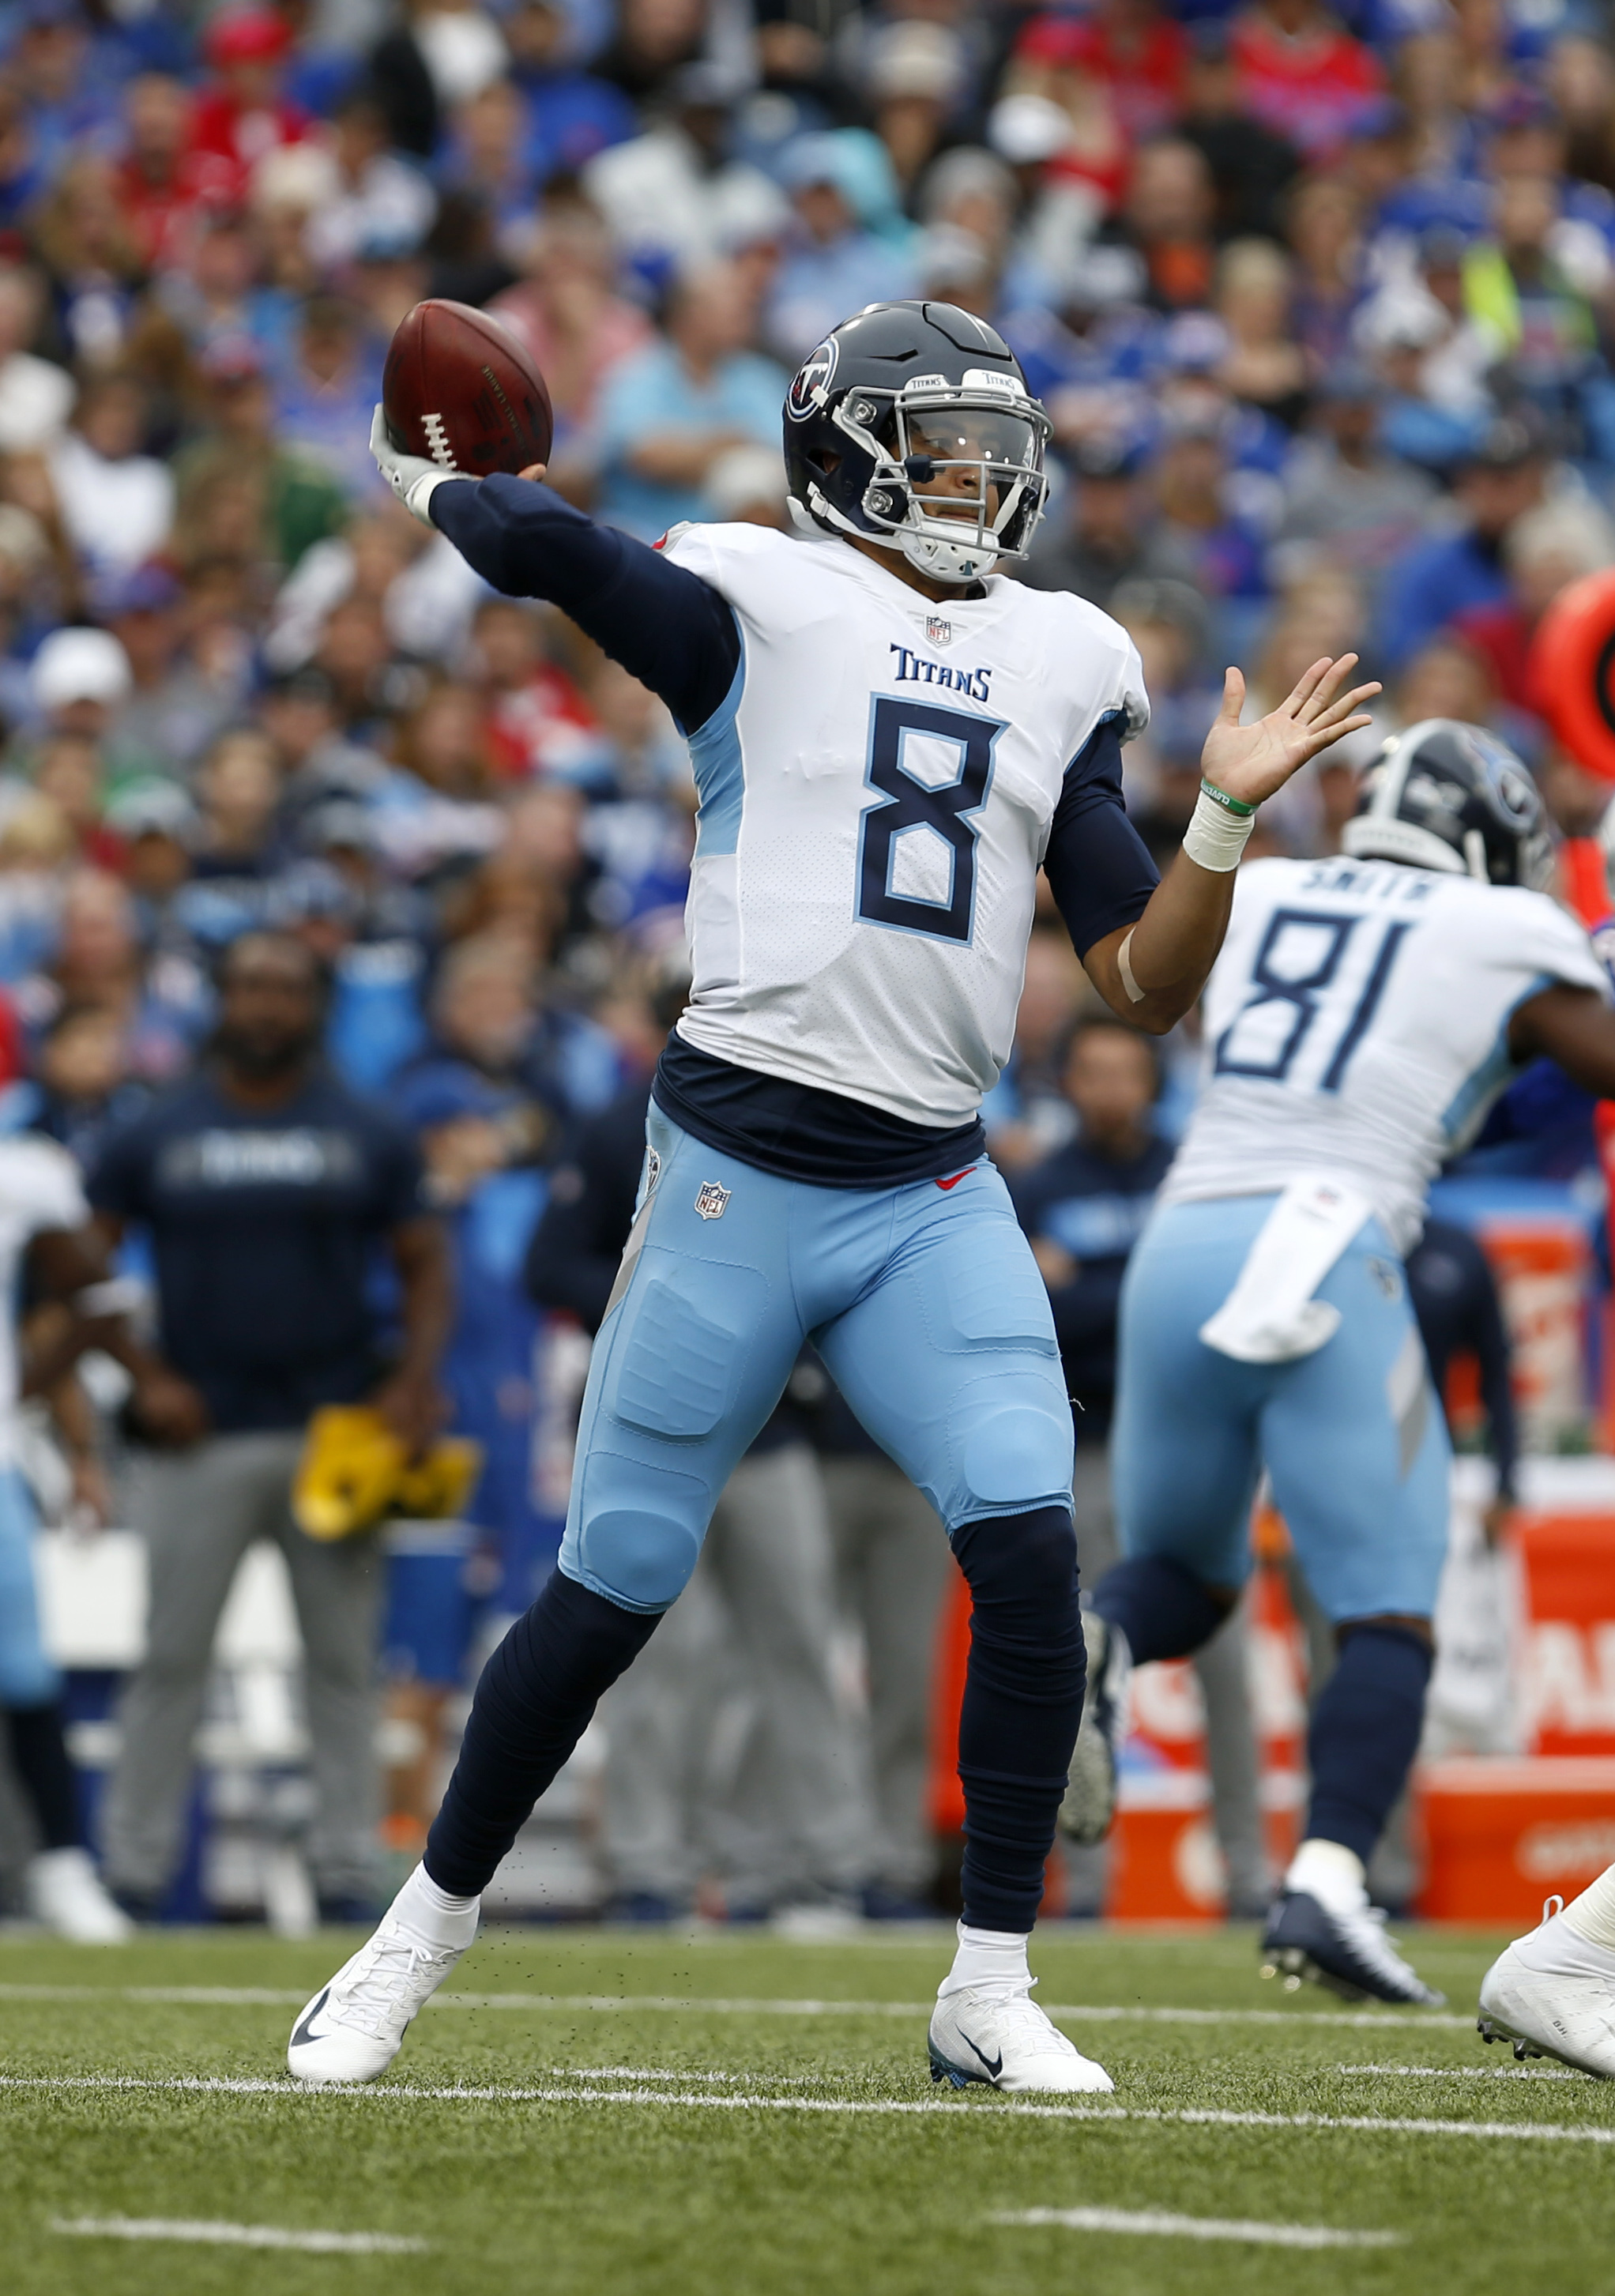 a364eb0c Marcus Mariota's Week 17 Status Uncertain; Titans To Sign Austin Davis